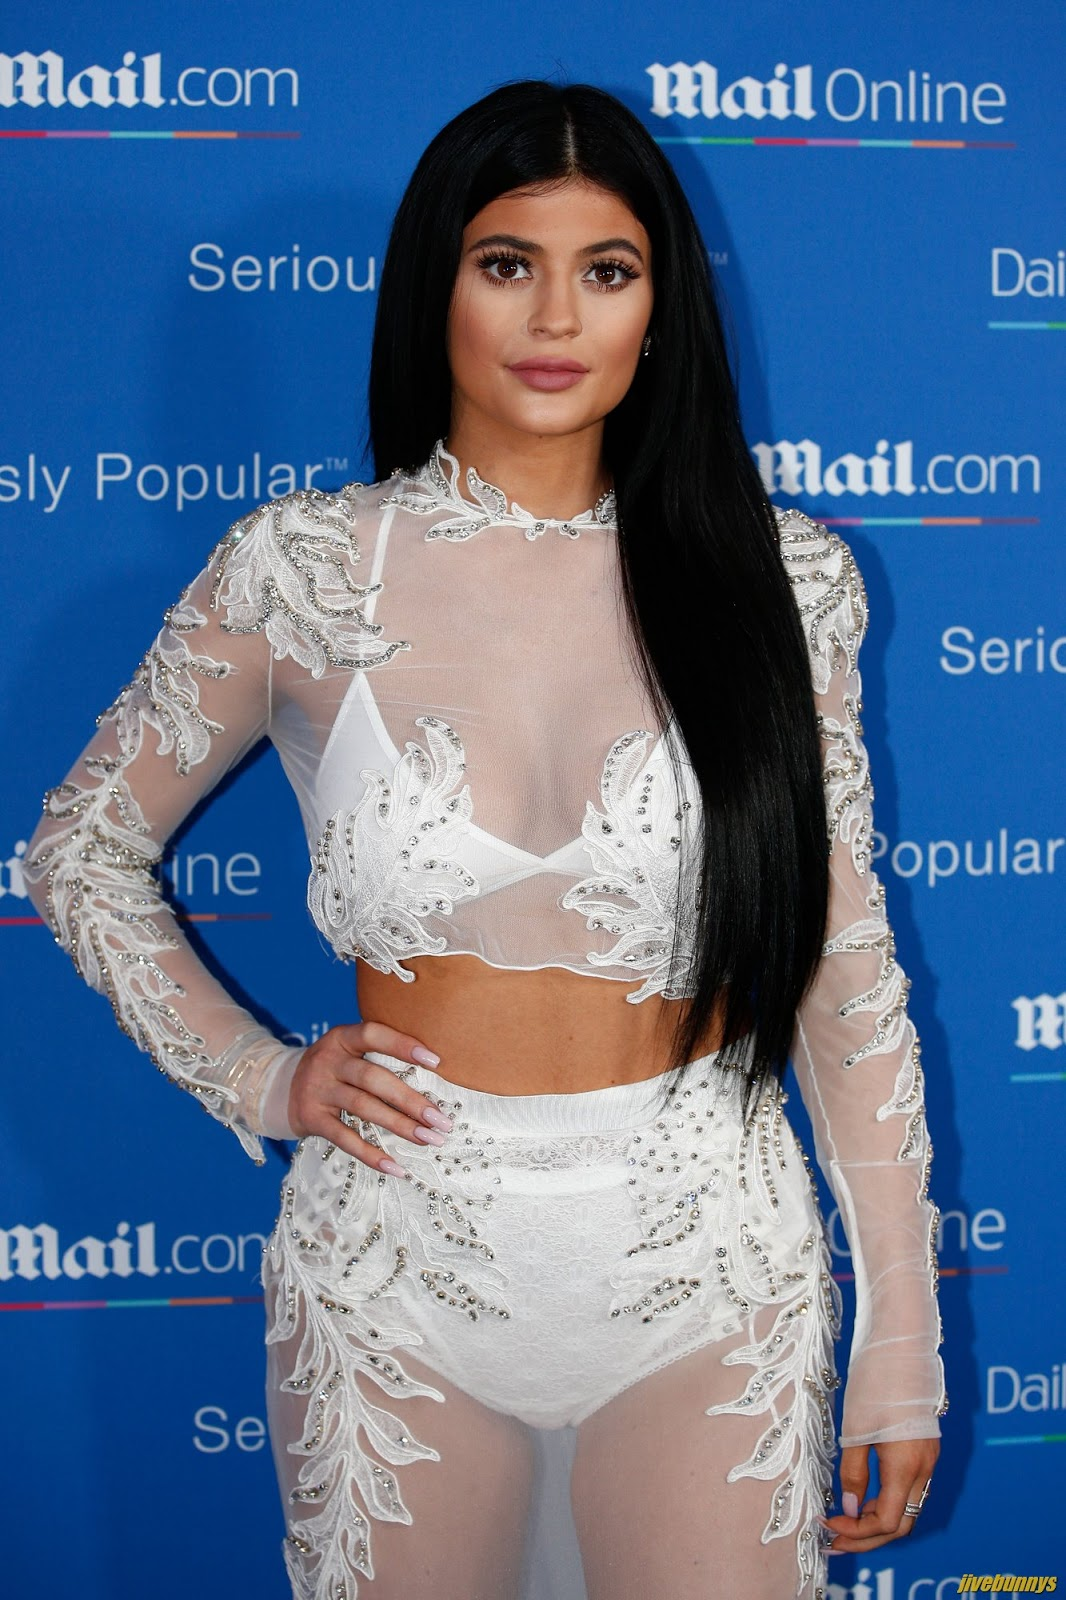 Jivebunnys Female Celebrity Picture Gallery: Kylie Jenner Celebrity ... Jessica Alba